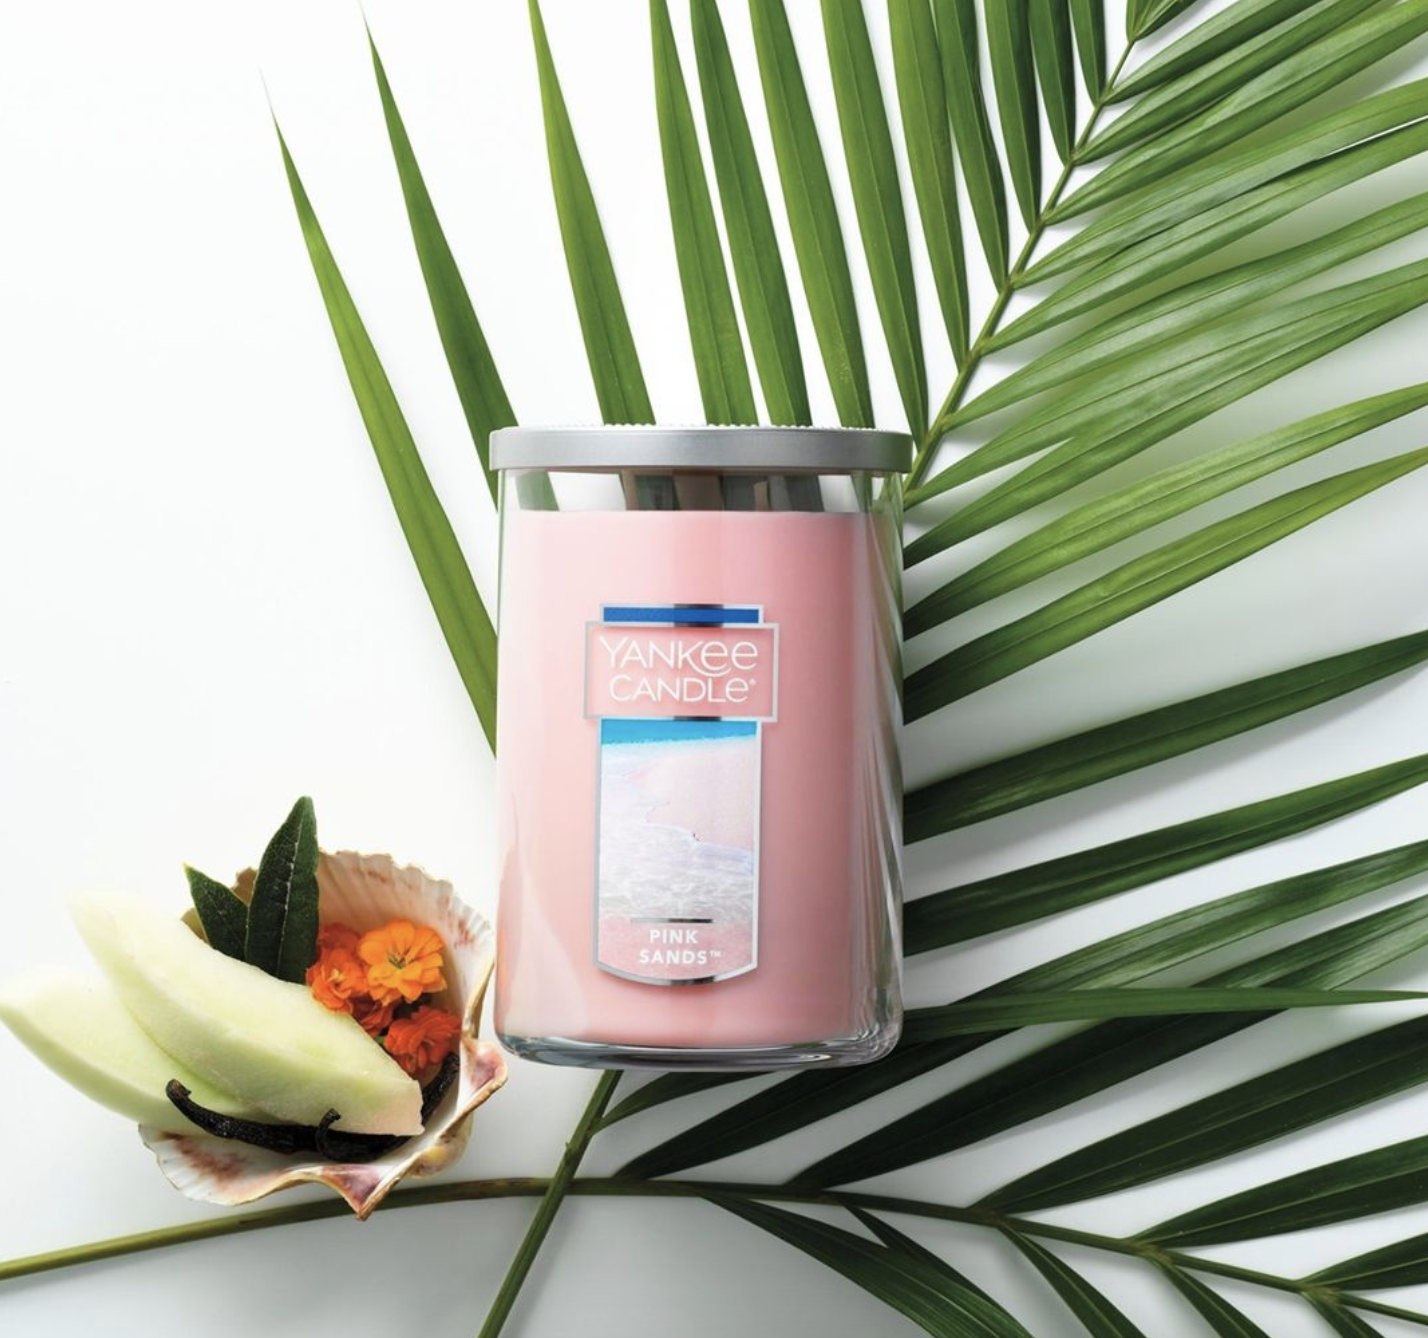 The Pink Sands candle in their signature large tumbler